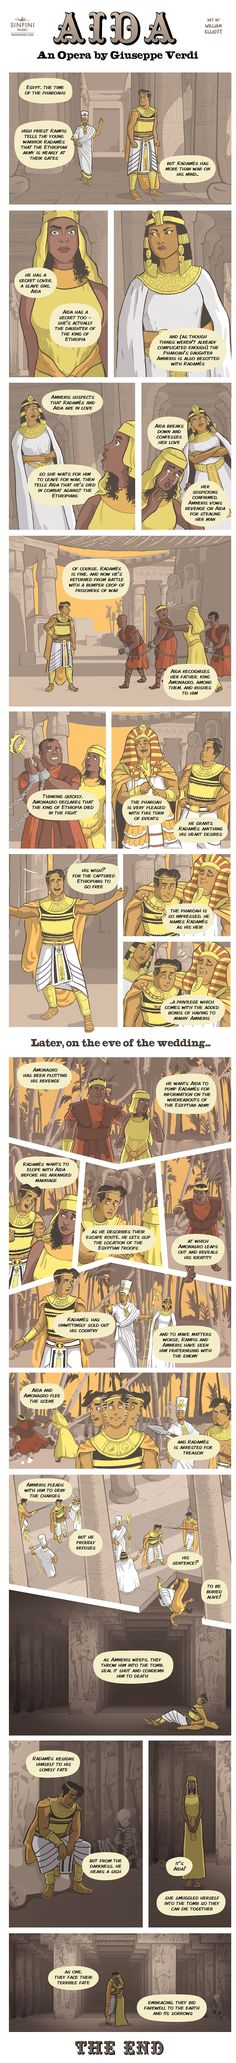 Opera Strip Aida